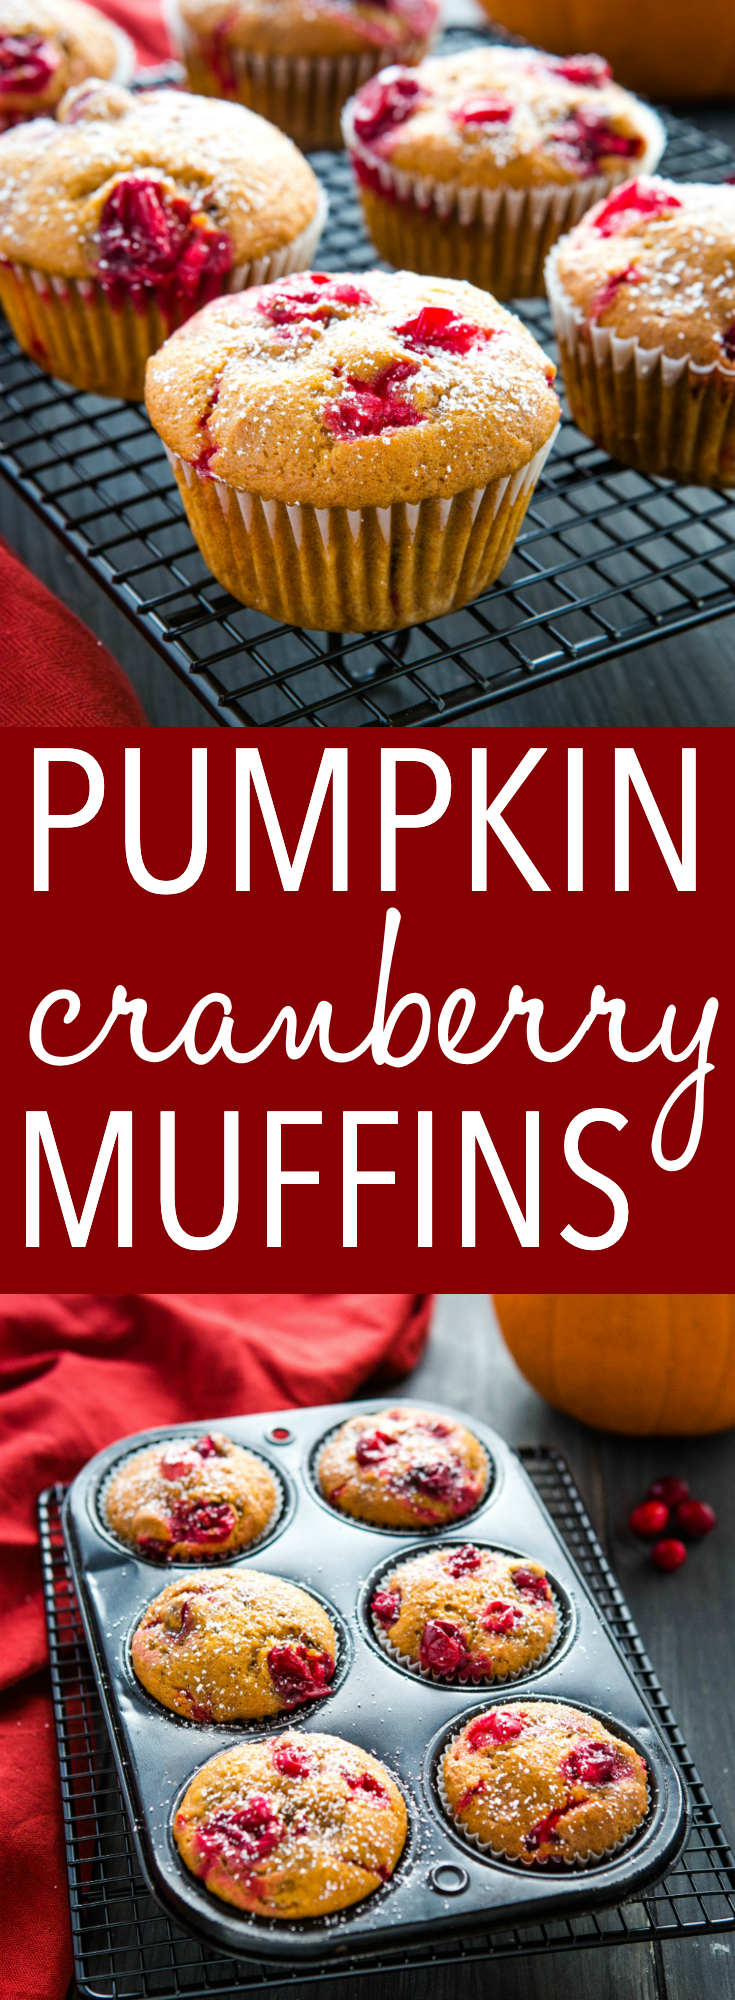 These Pumpkin Cranberry Muffins are the perfect easy fall or winter dessert! An easy one-bowl pumpkin muffin batter with fresh cranberries, these cranberry muffins are moist and flavourful and topped with a dusting of powdered sugar! Recipe from thebusybaker.ca! #muffins #pumpkin #cranberries #dessert #easytomake #onebowl #simplerecipe via @busybakerblog